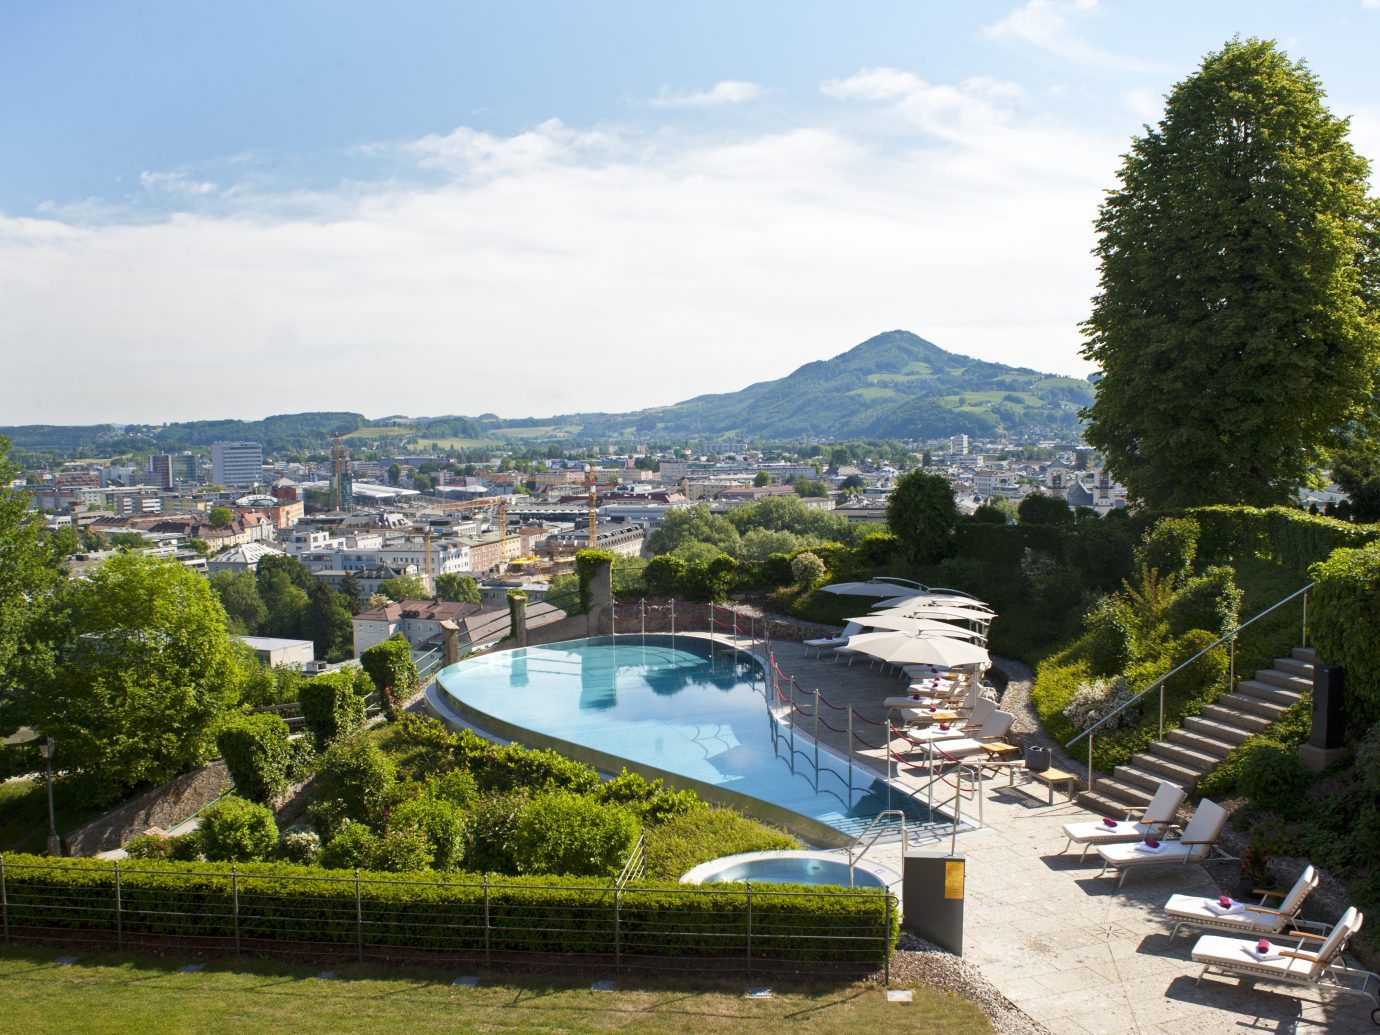 the grounds and pool at Schloss Mönchstein Hotel in Salzburg, Austria